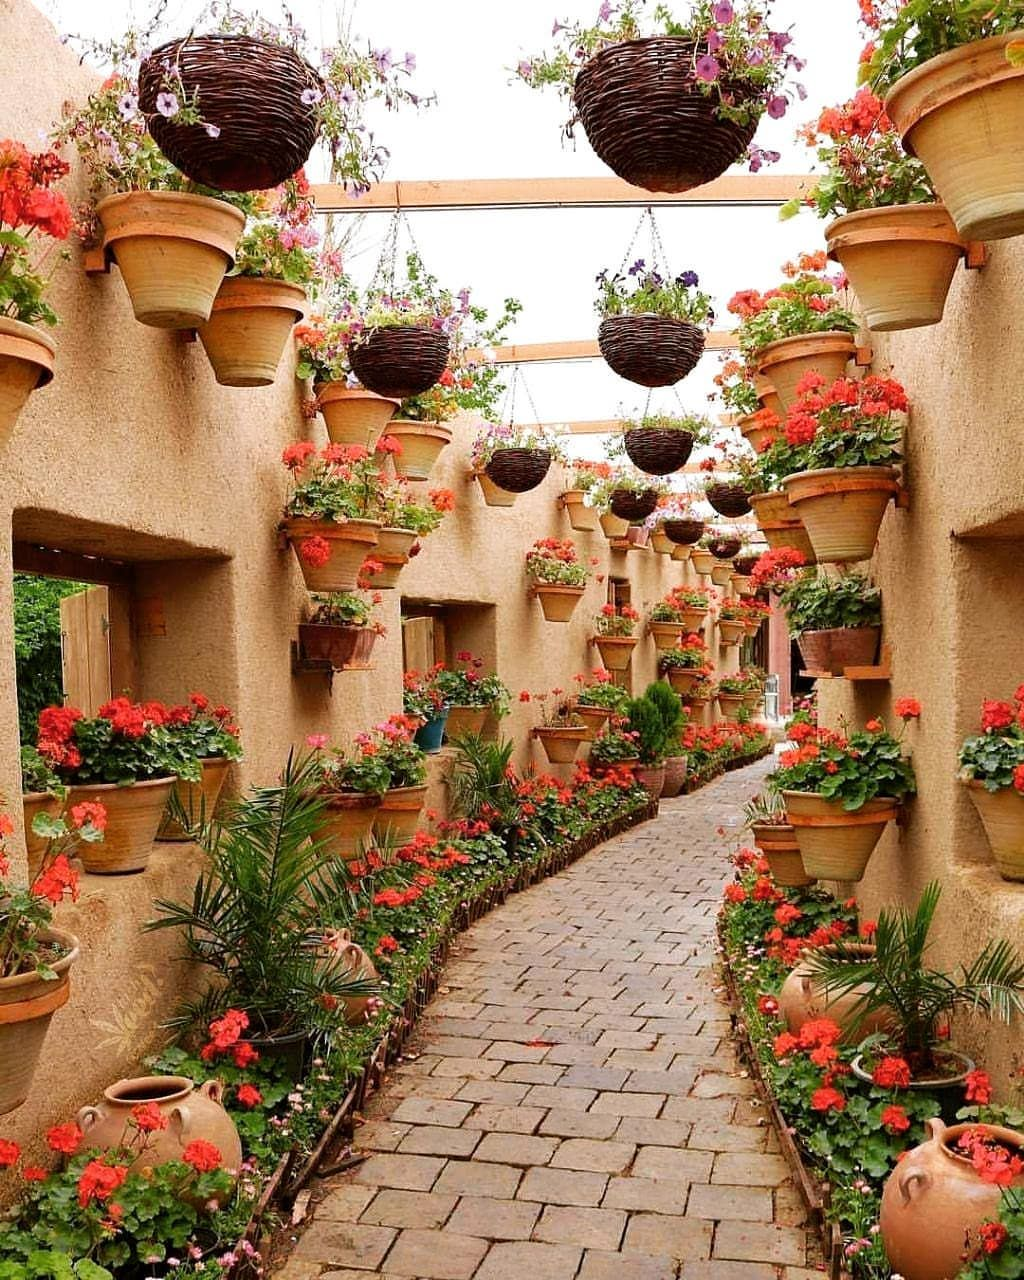 This Is An Alley On Ahmadabad Street In Mashhad Perhaps The Most Beautiful Alley In The World کوچه ای در احمدآباد مشه Iran Travel Plants Hanging Garden